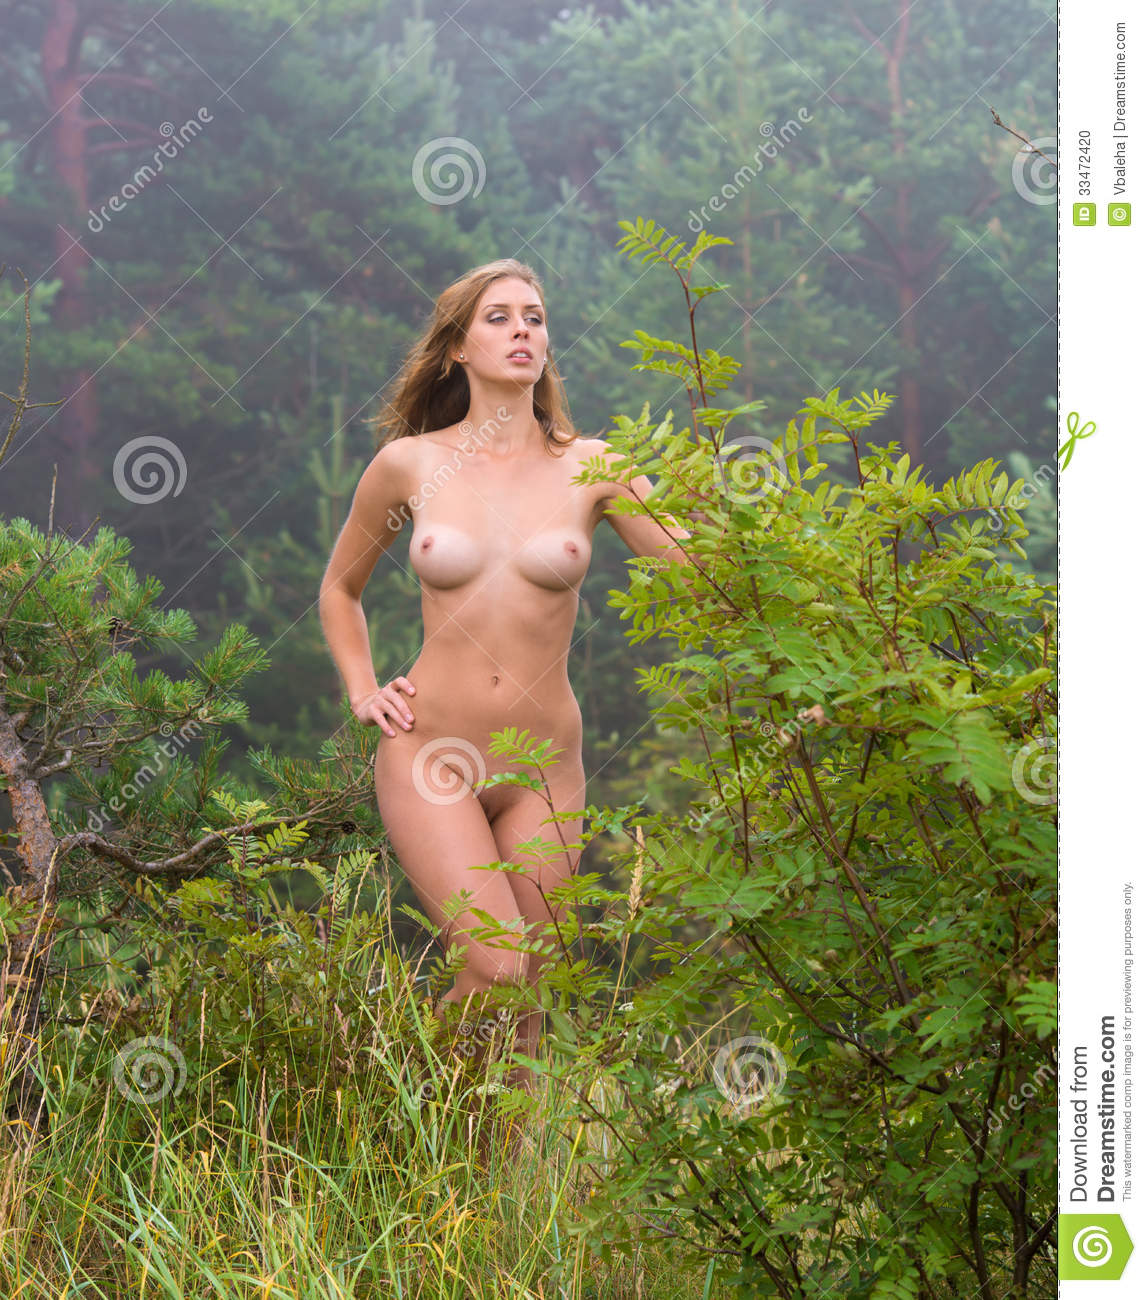 Nude women in the forest nude movie